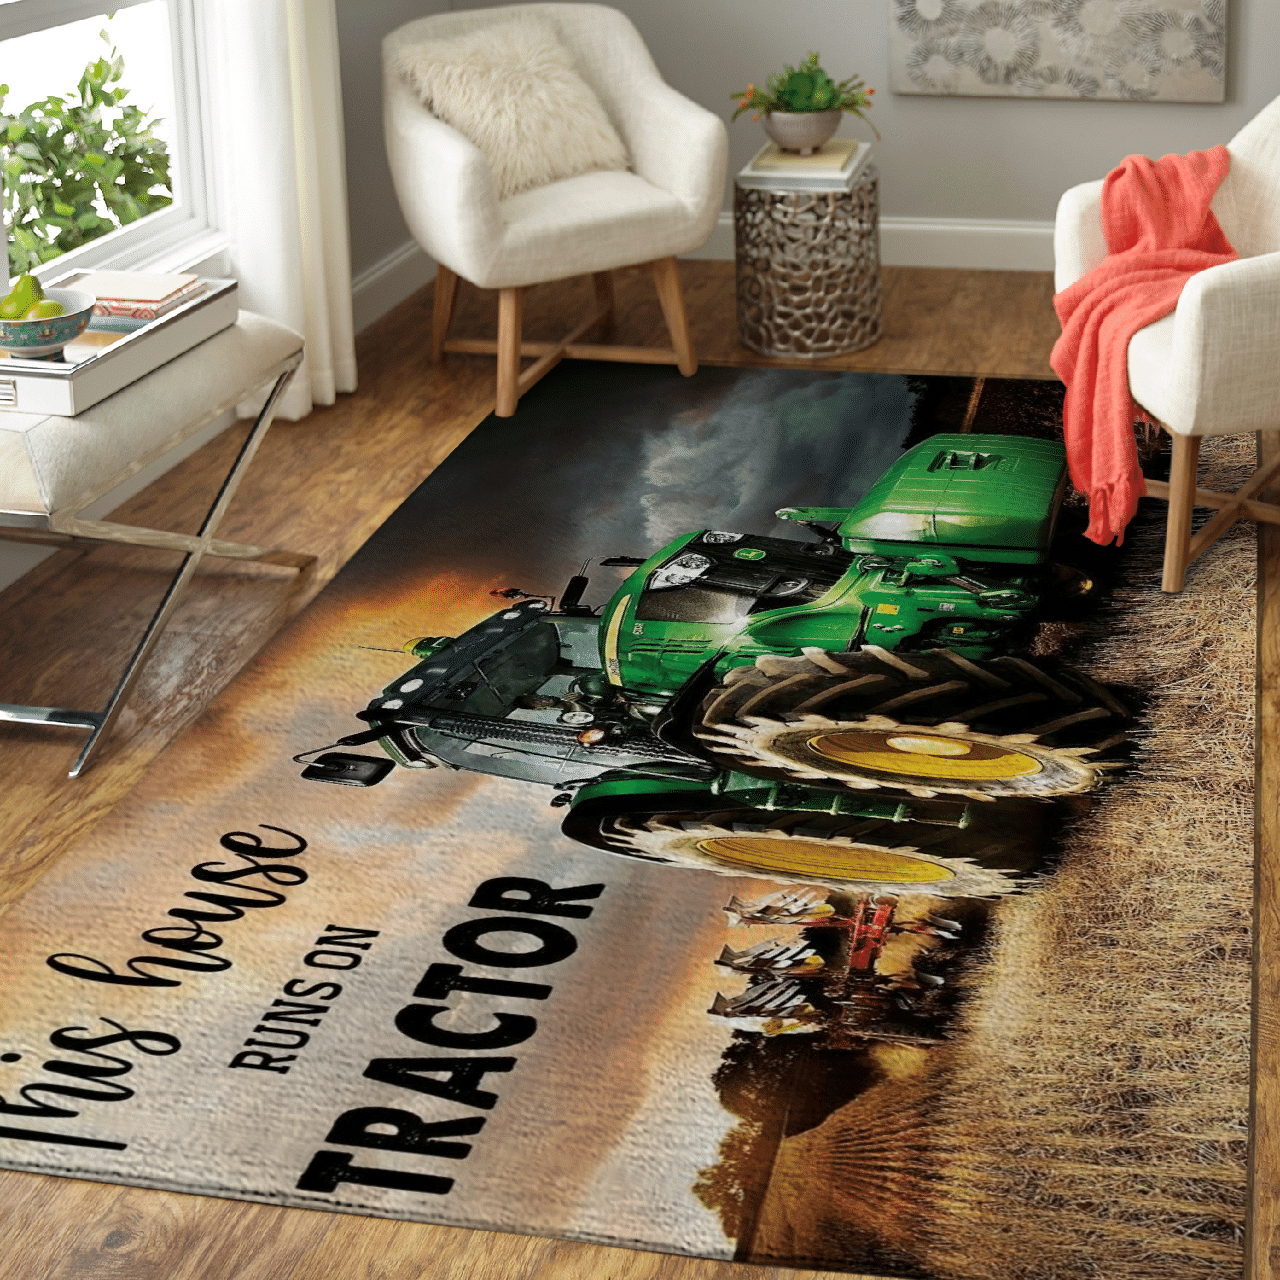 This house runs on Tractor